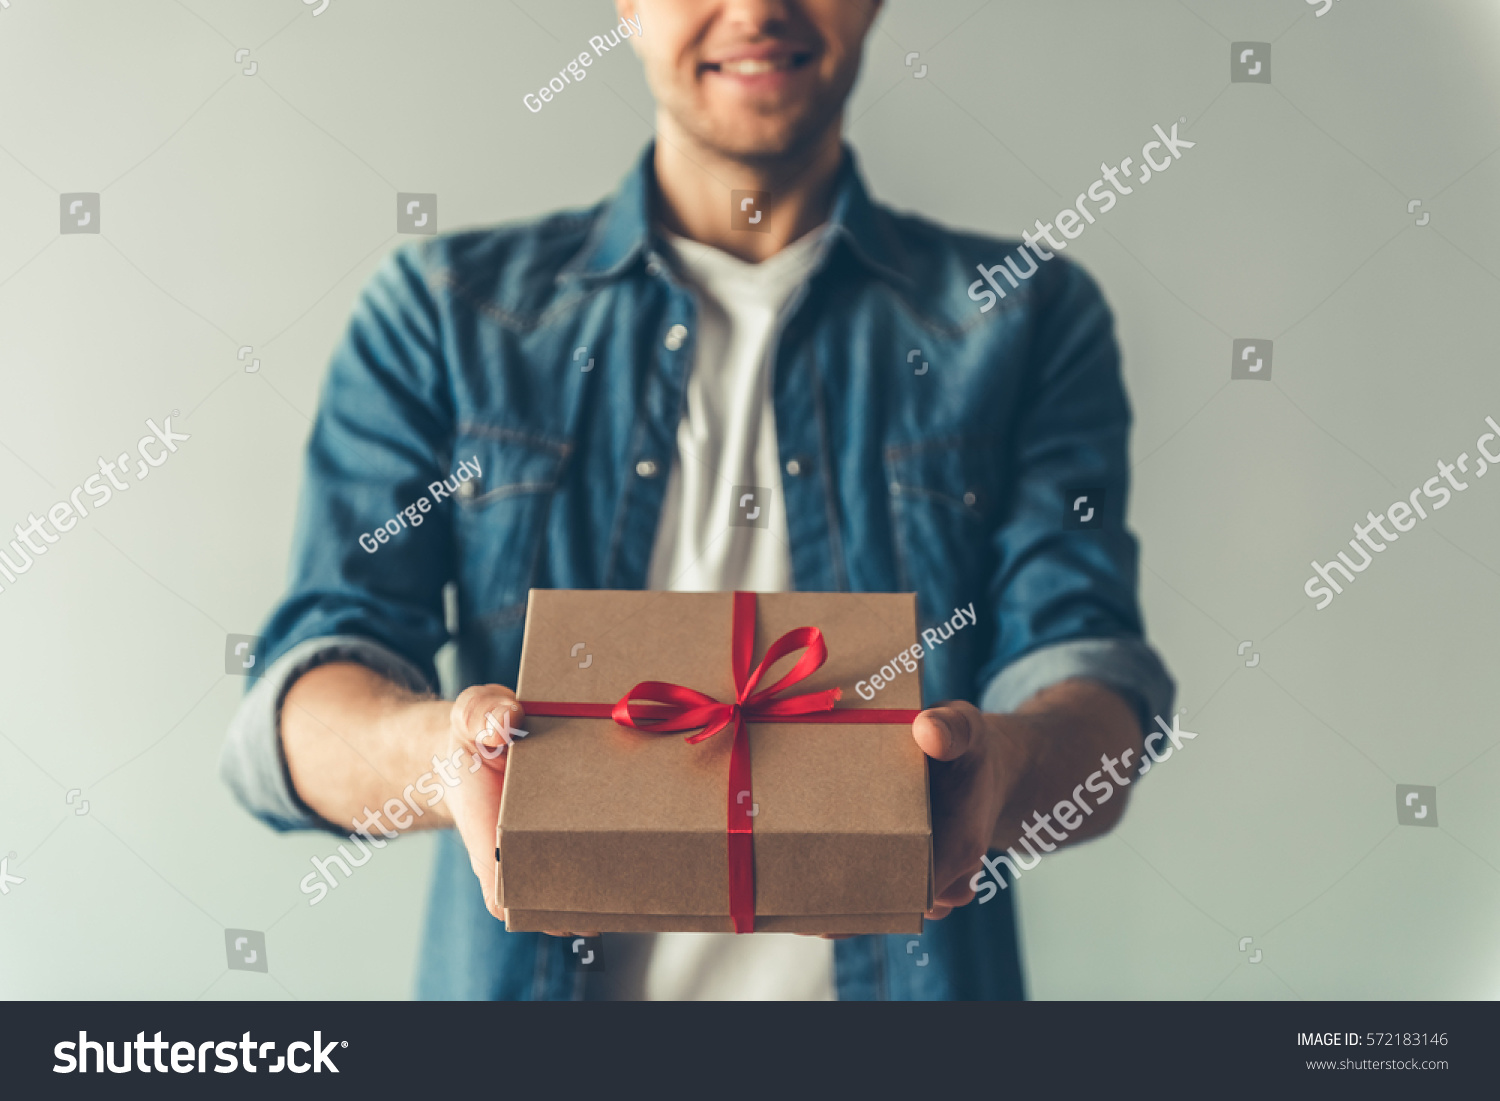 Cropped image of handsome romantic guy smiling while holding a present for his couple, on gray background #572183146